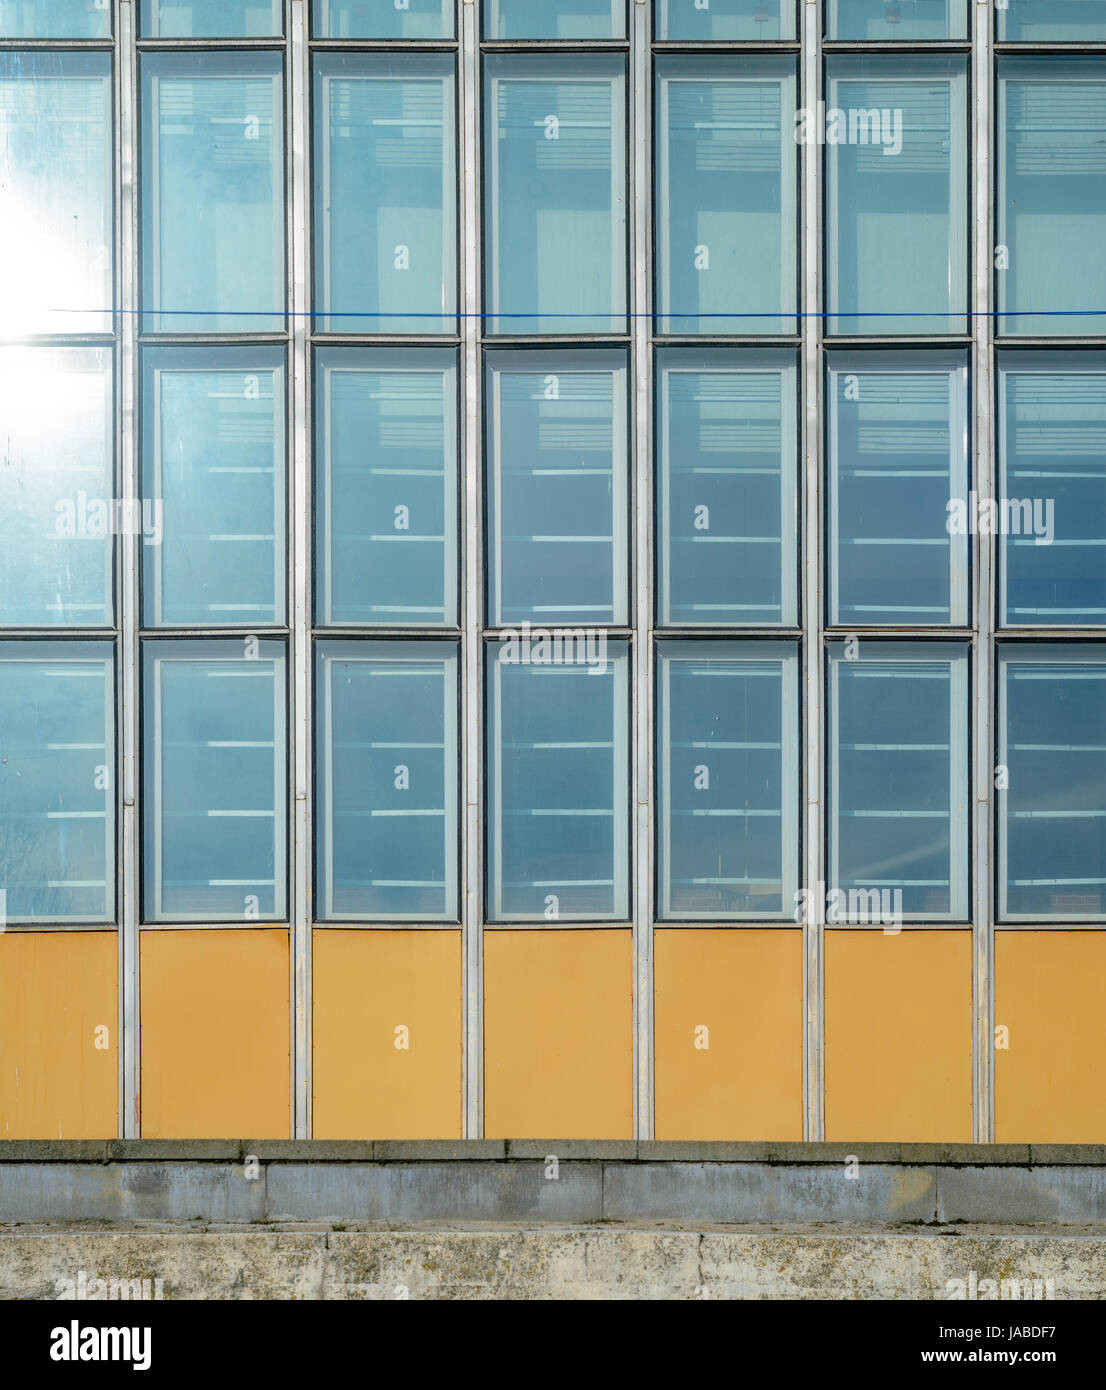 Aluminium curtain wall systems metal technology - Architecture Abstract Background Glass Curtain Wall Texture Stained Glass System Based On Outdated Technology Facade Detail